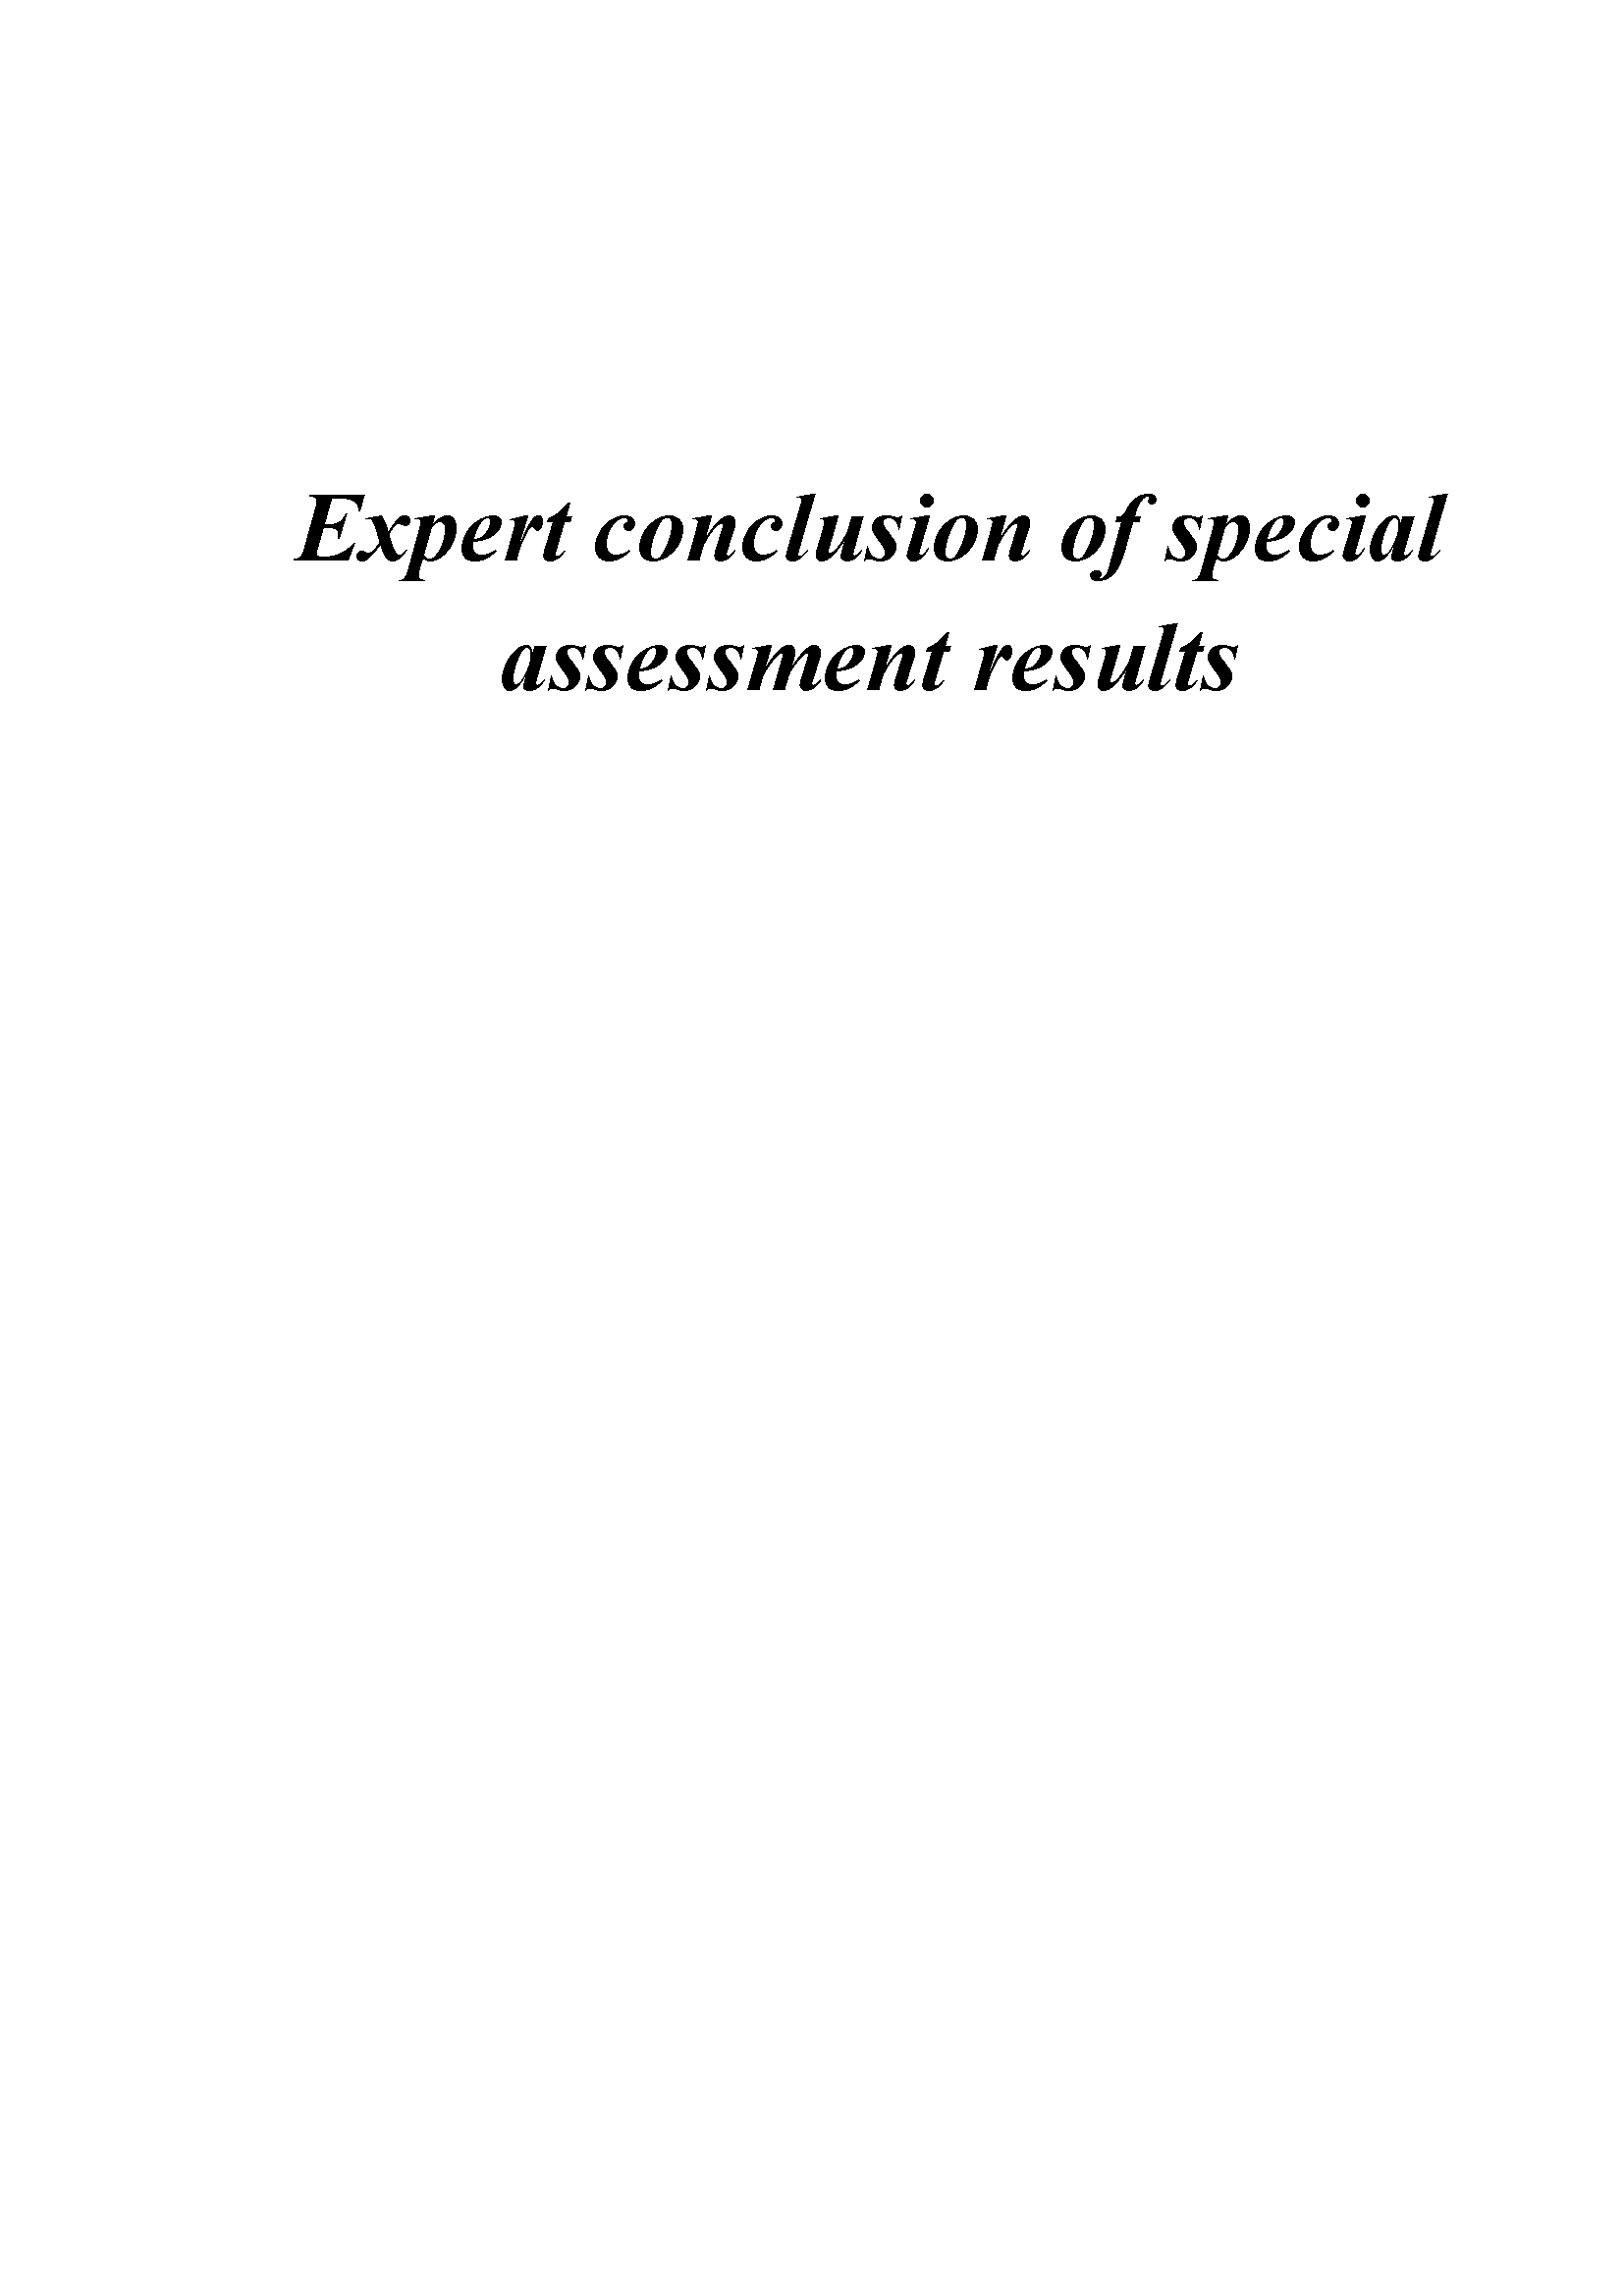 Expert conclusion of special assessment